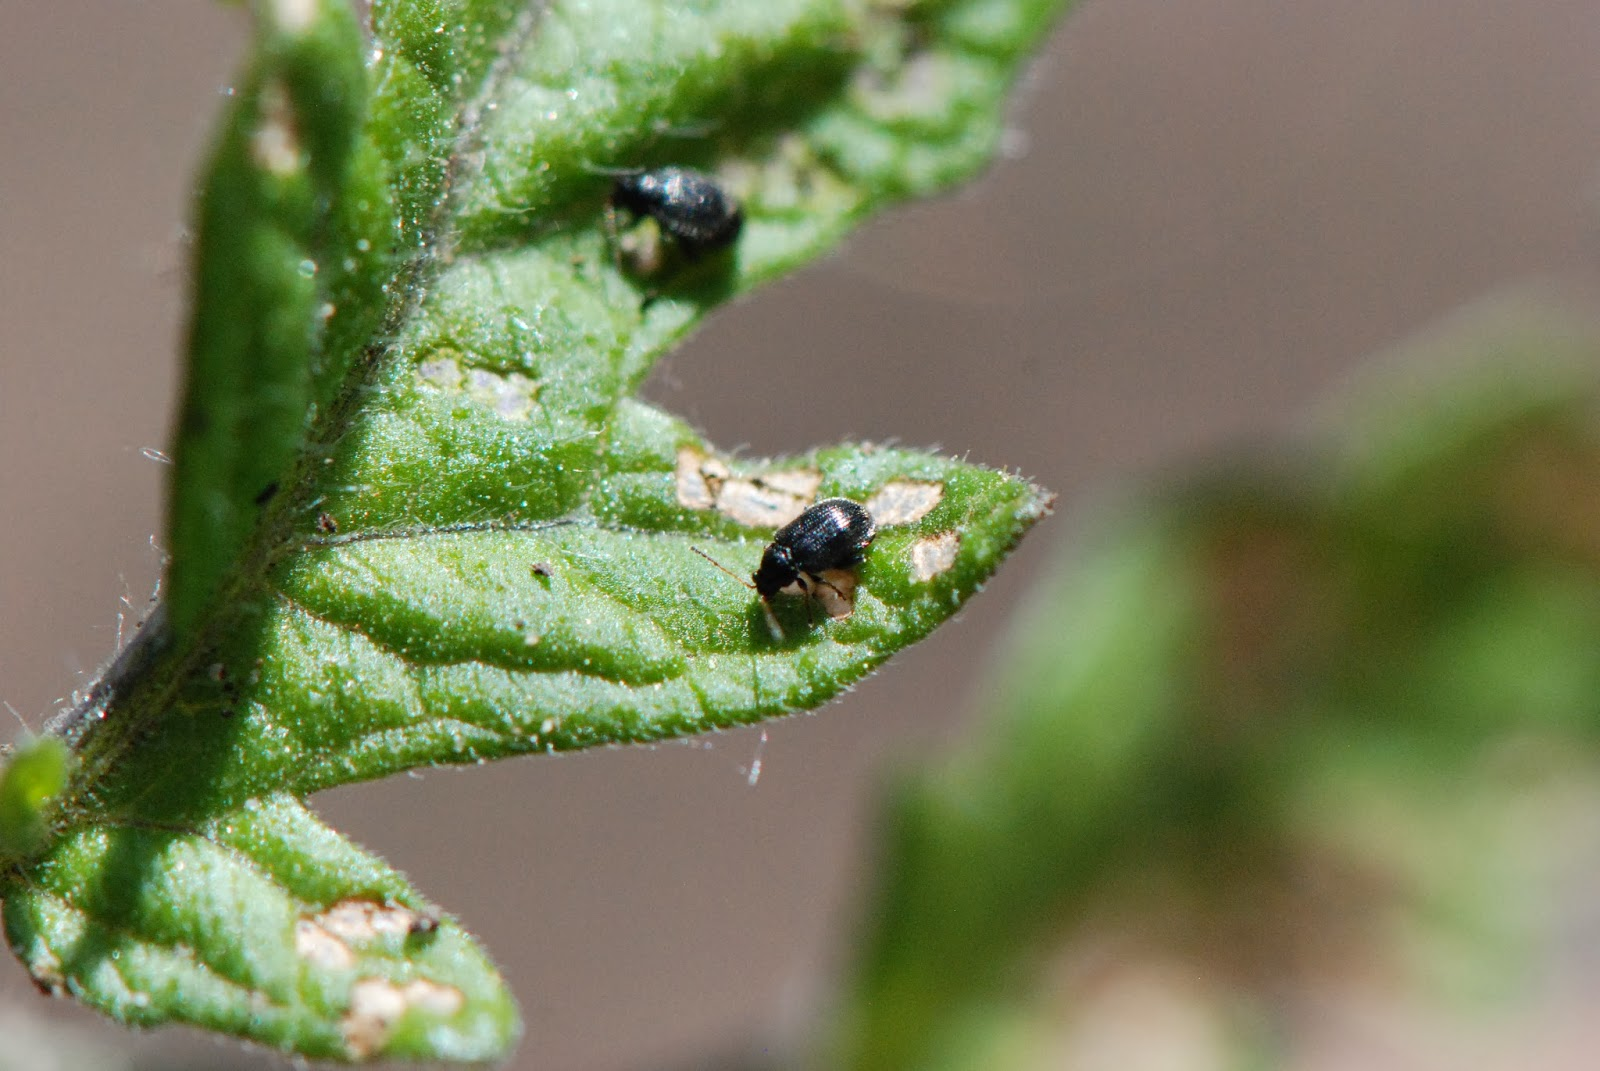 Two flea beetles eating on a tomato leaf